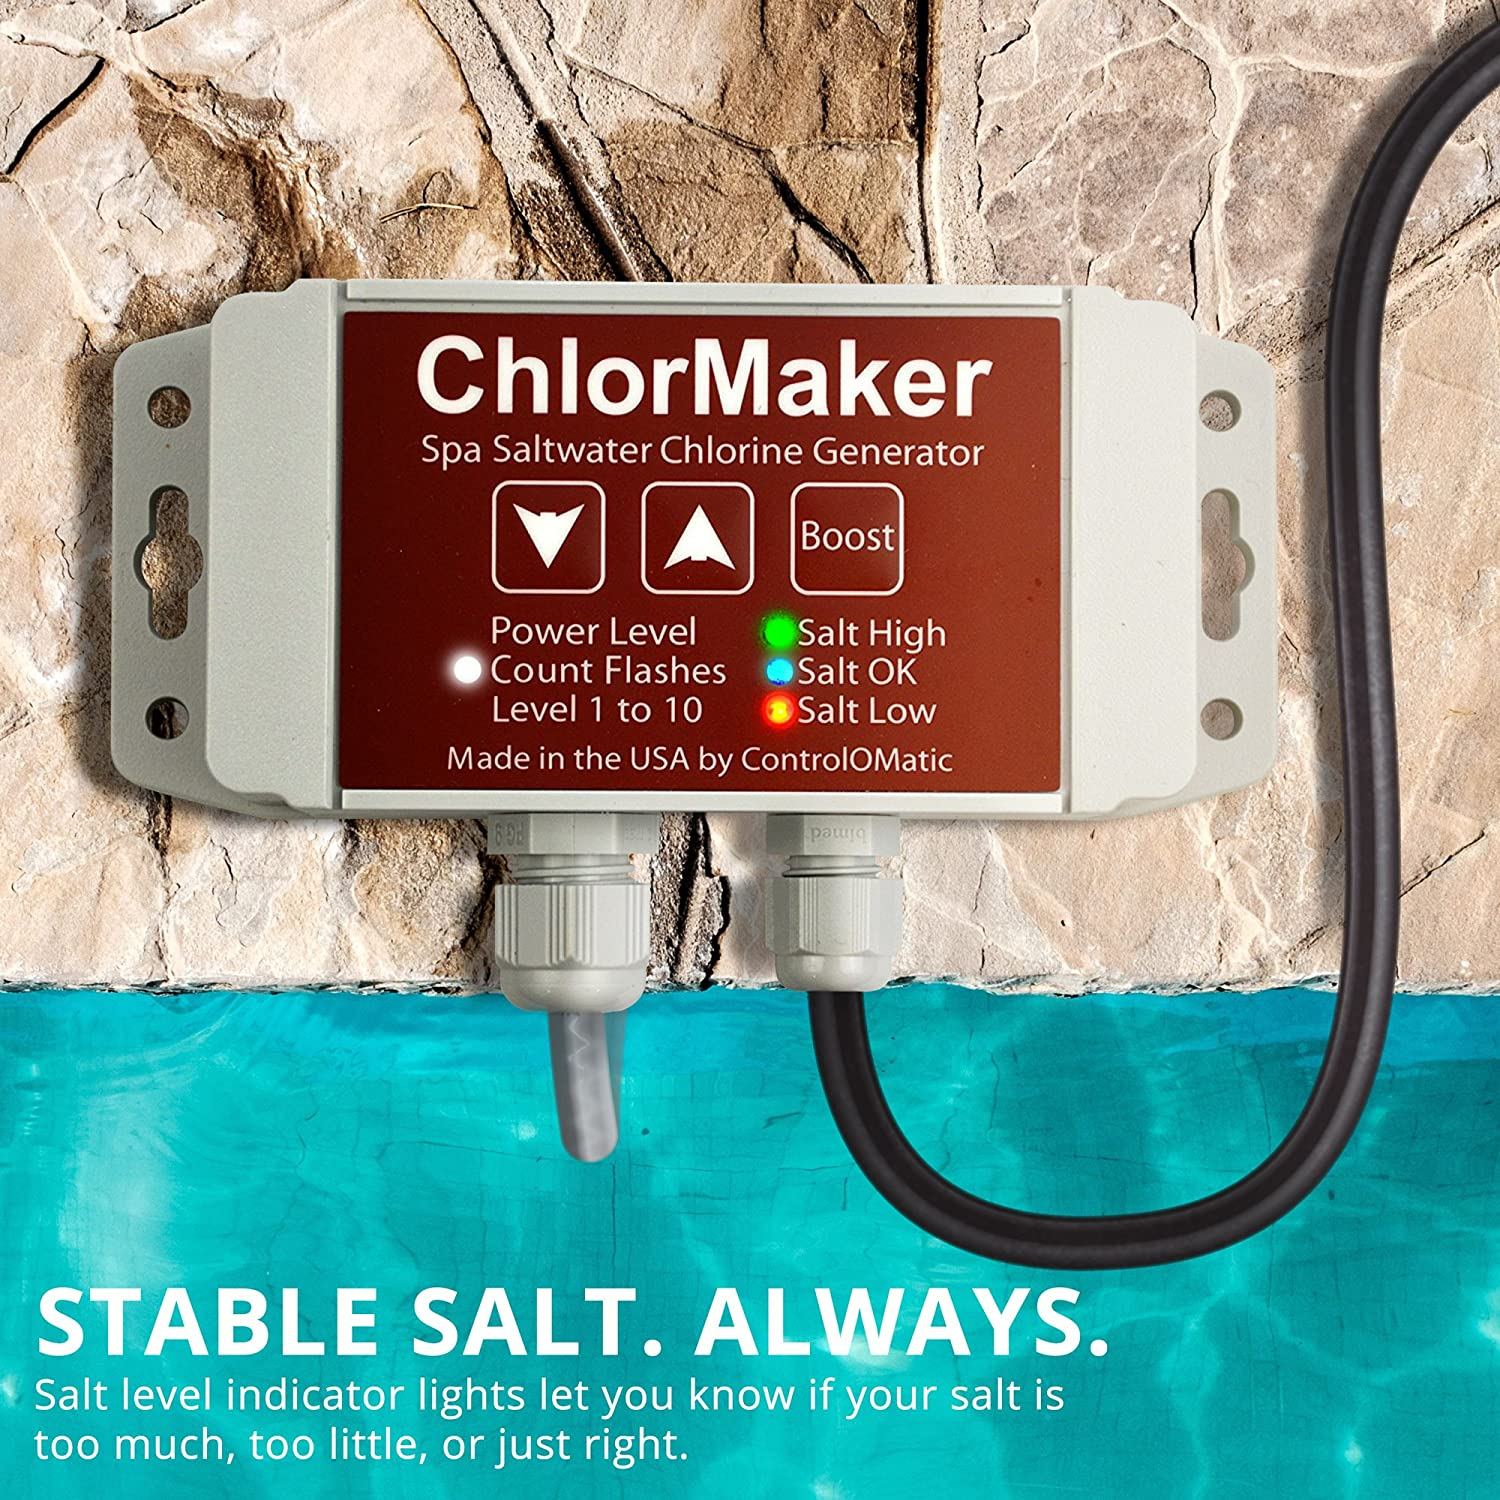 Controlomatic Chlormaker Saltwater Chlorine Generation Regulations For Wiring Up A Hot Tub System Pools Tubs And Spas To 1 000 Gallons 30 Gram Maximum Daily